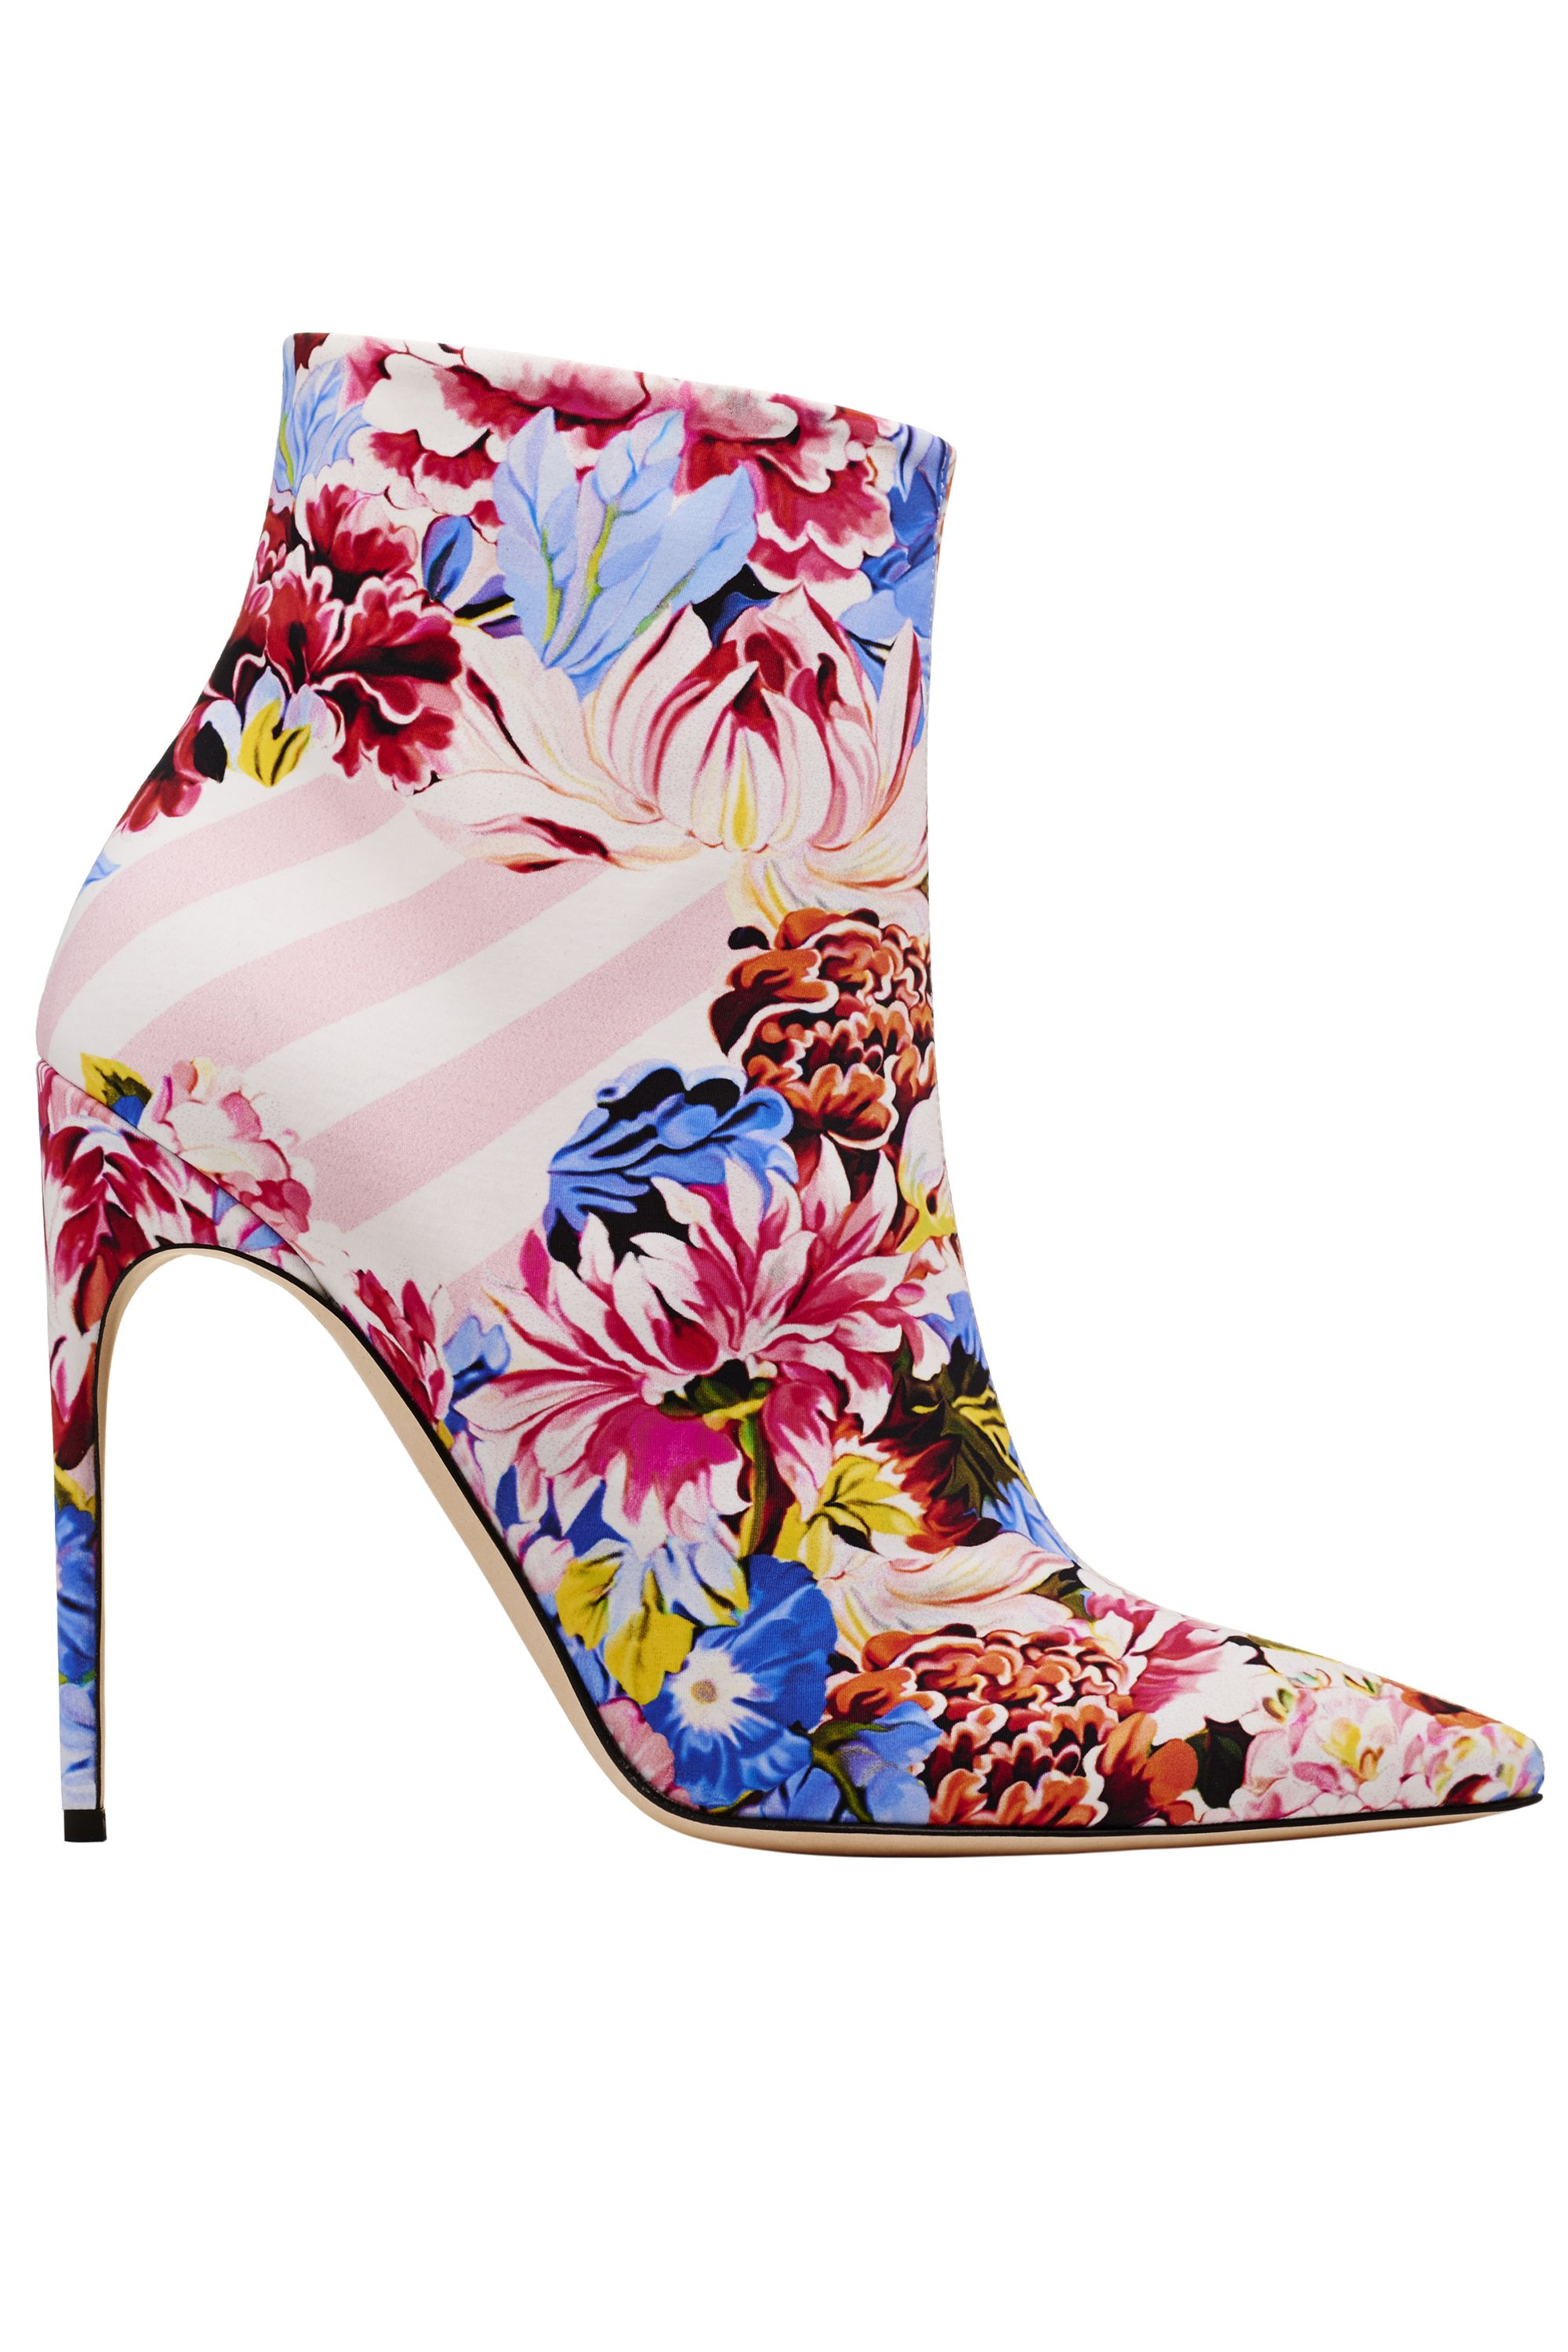 41fea6e6e5c3 See the Victoria s Secret Fashion Show Shoes Before They Hit the Runway